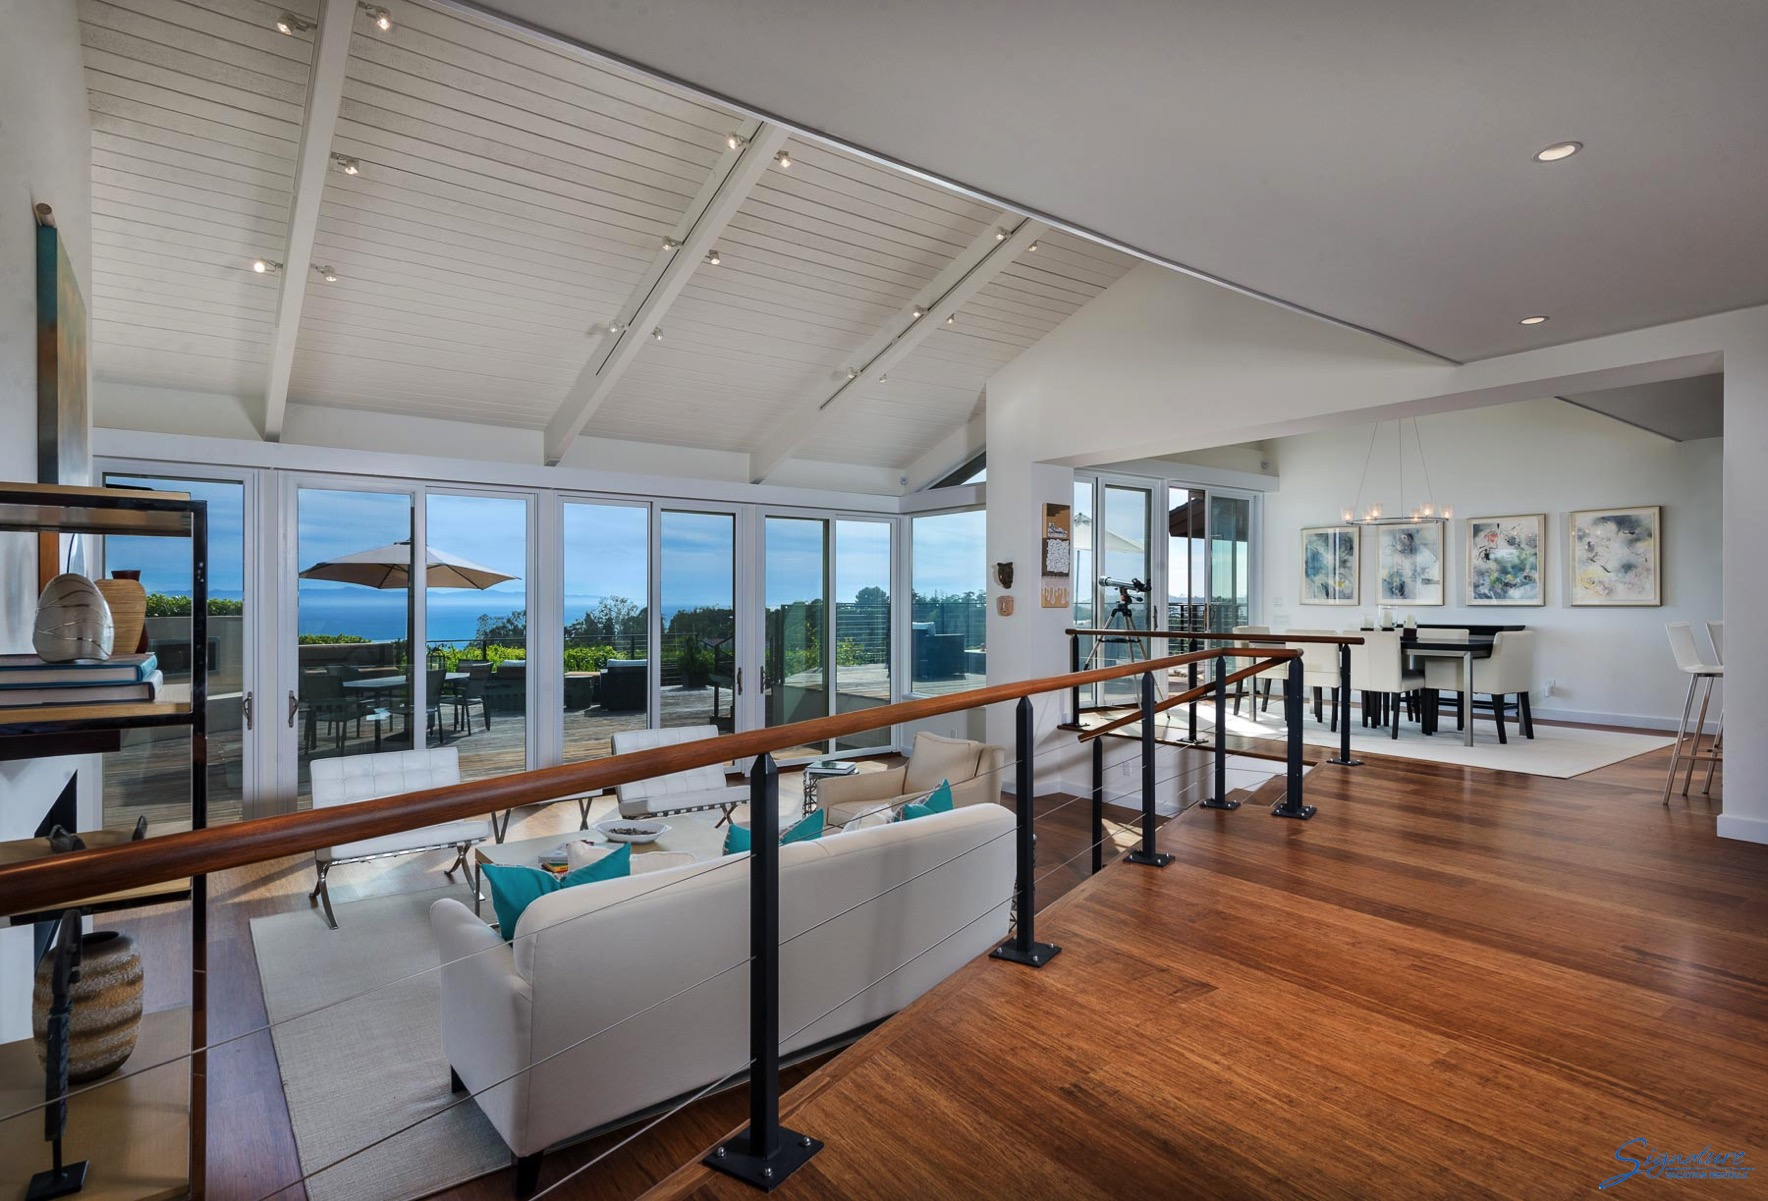 The living room is light and bright with large plate glass windows framing the ocean views.